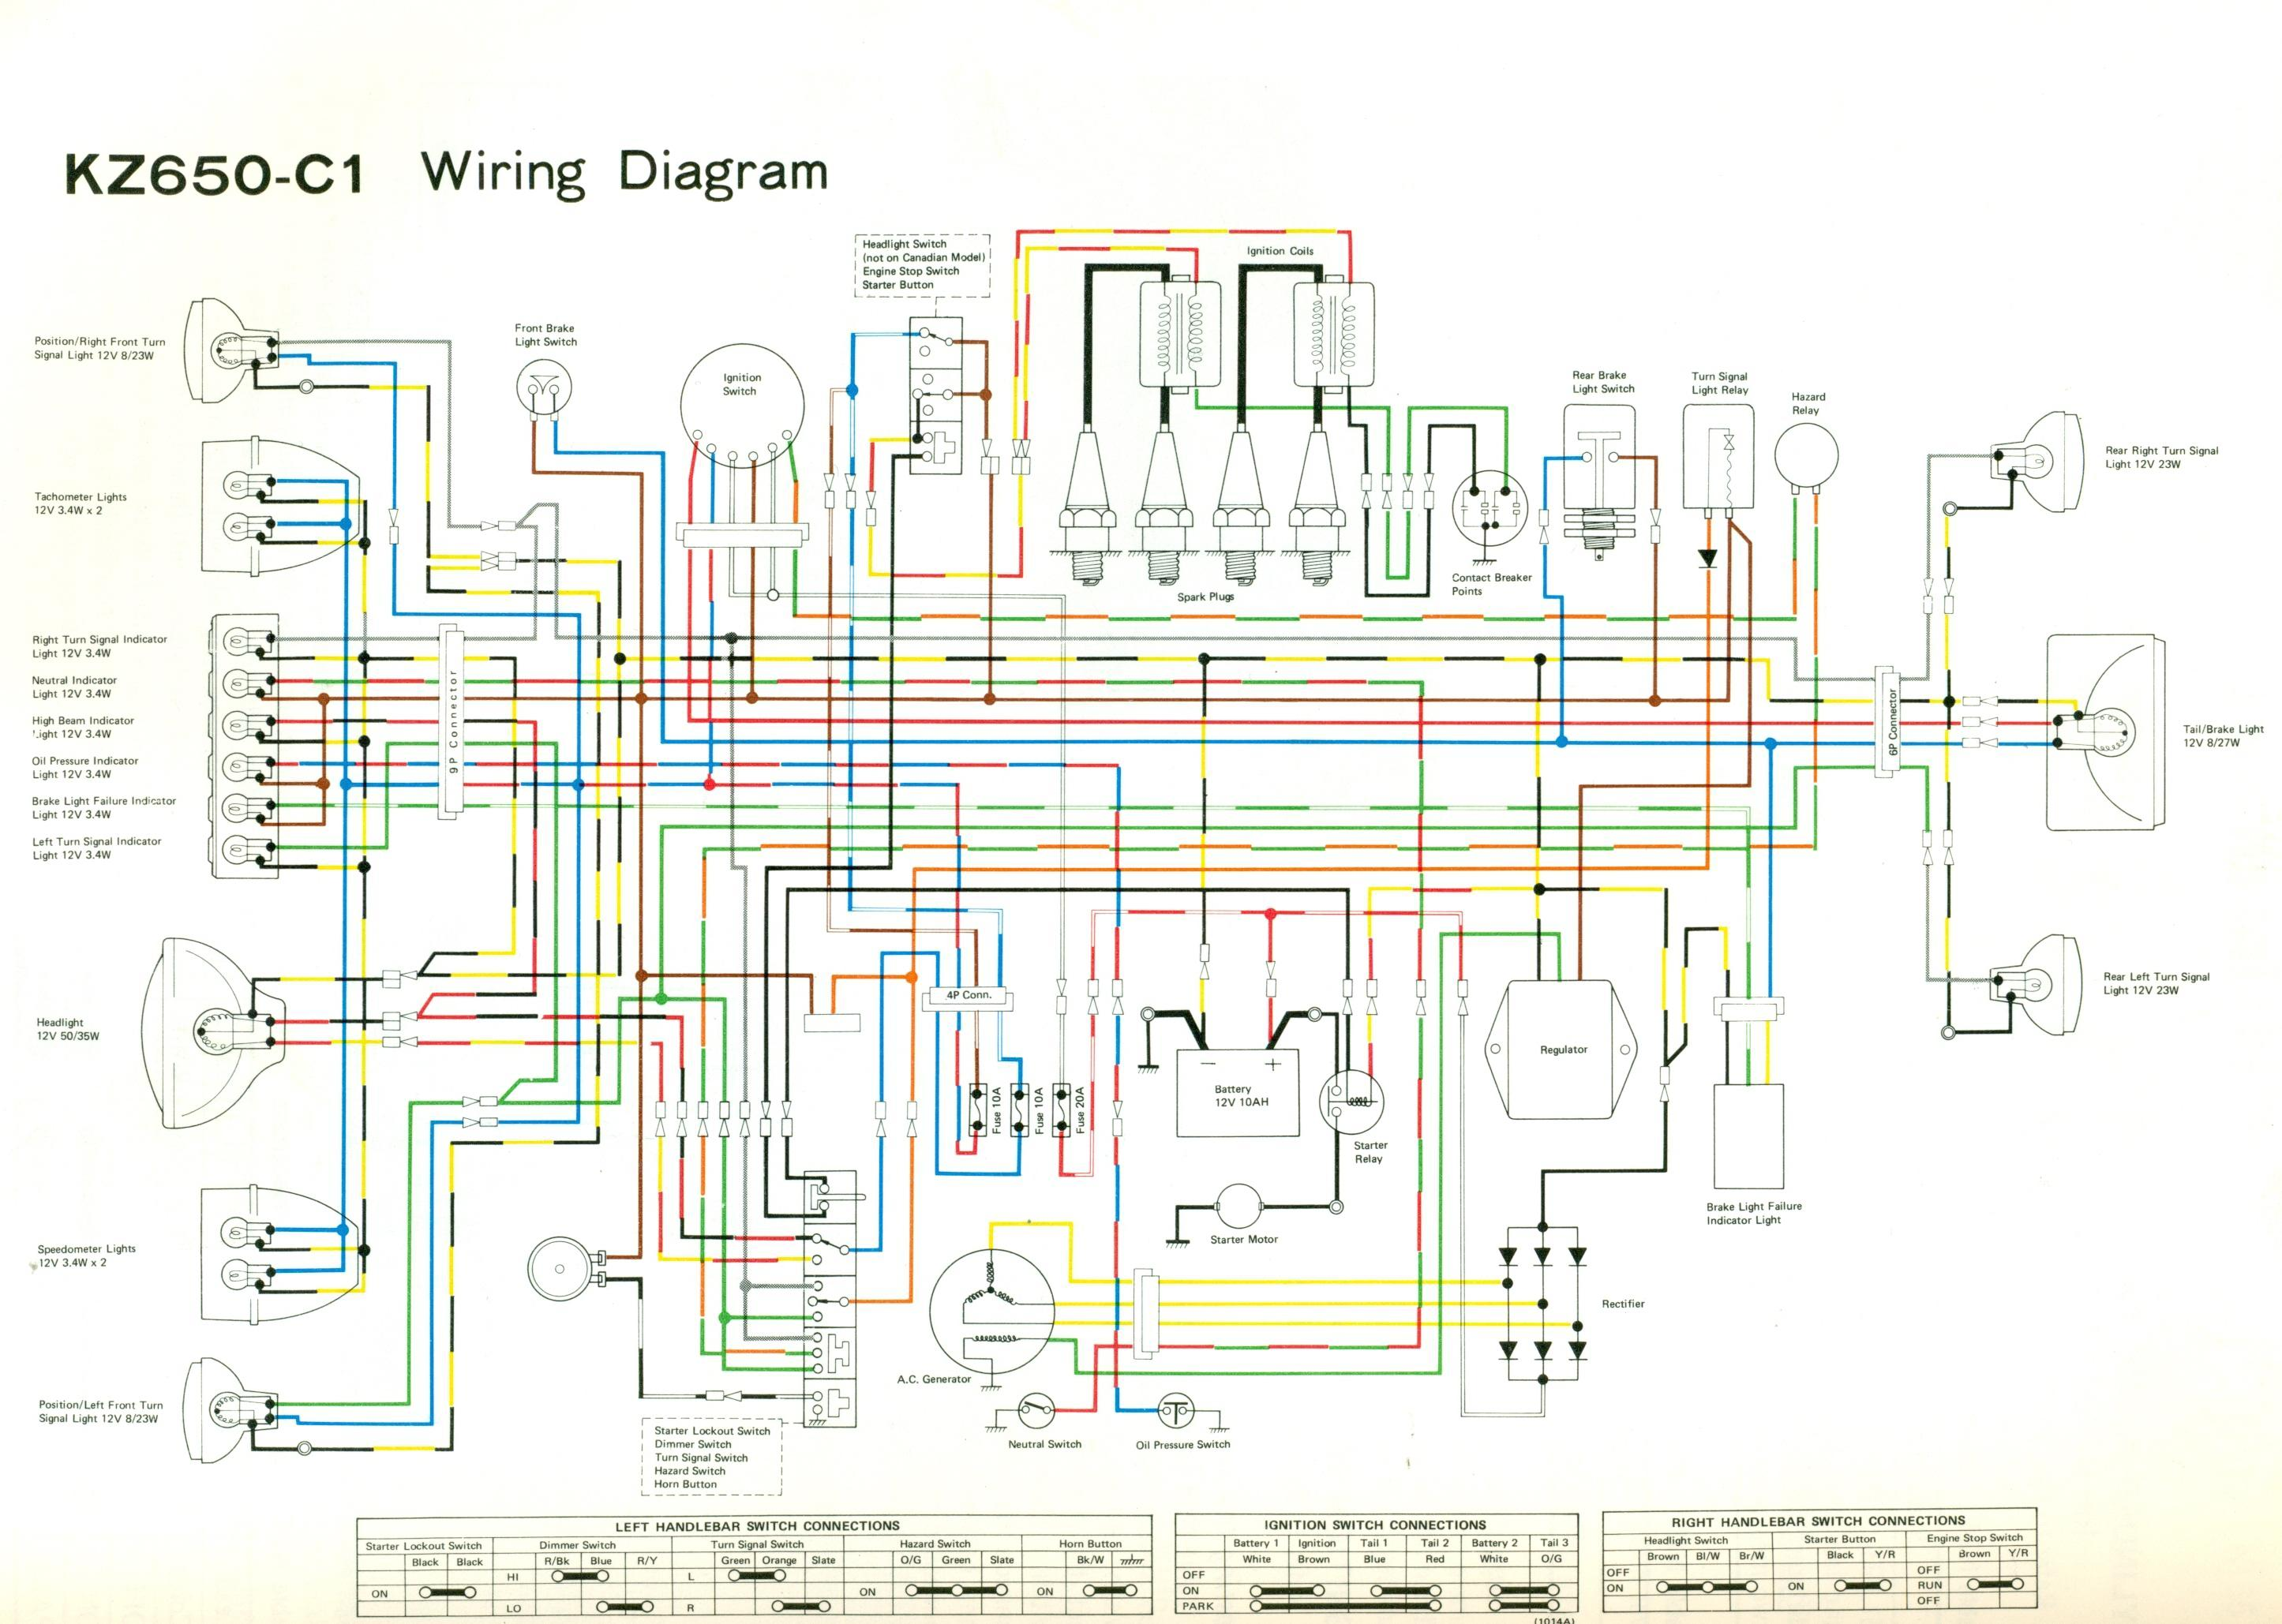 wiring diagrams 77 kz650 wiring diagram 1977 kz650 wiring diagram